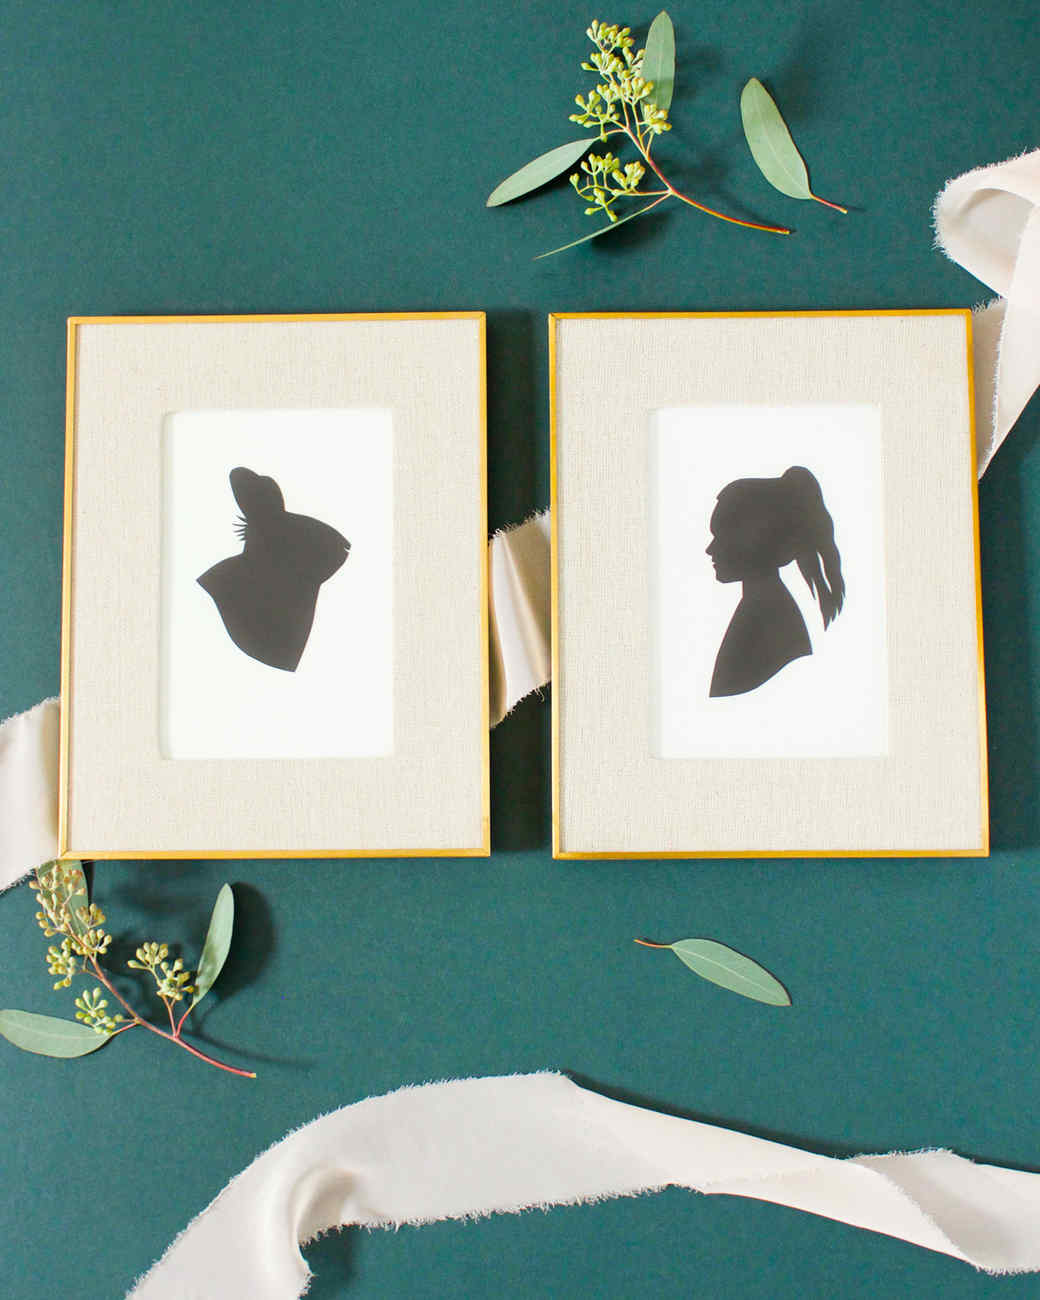 framed silhouette art rabbit and woman